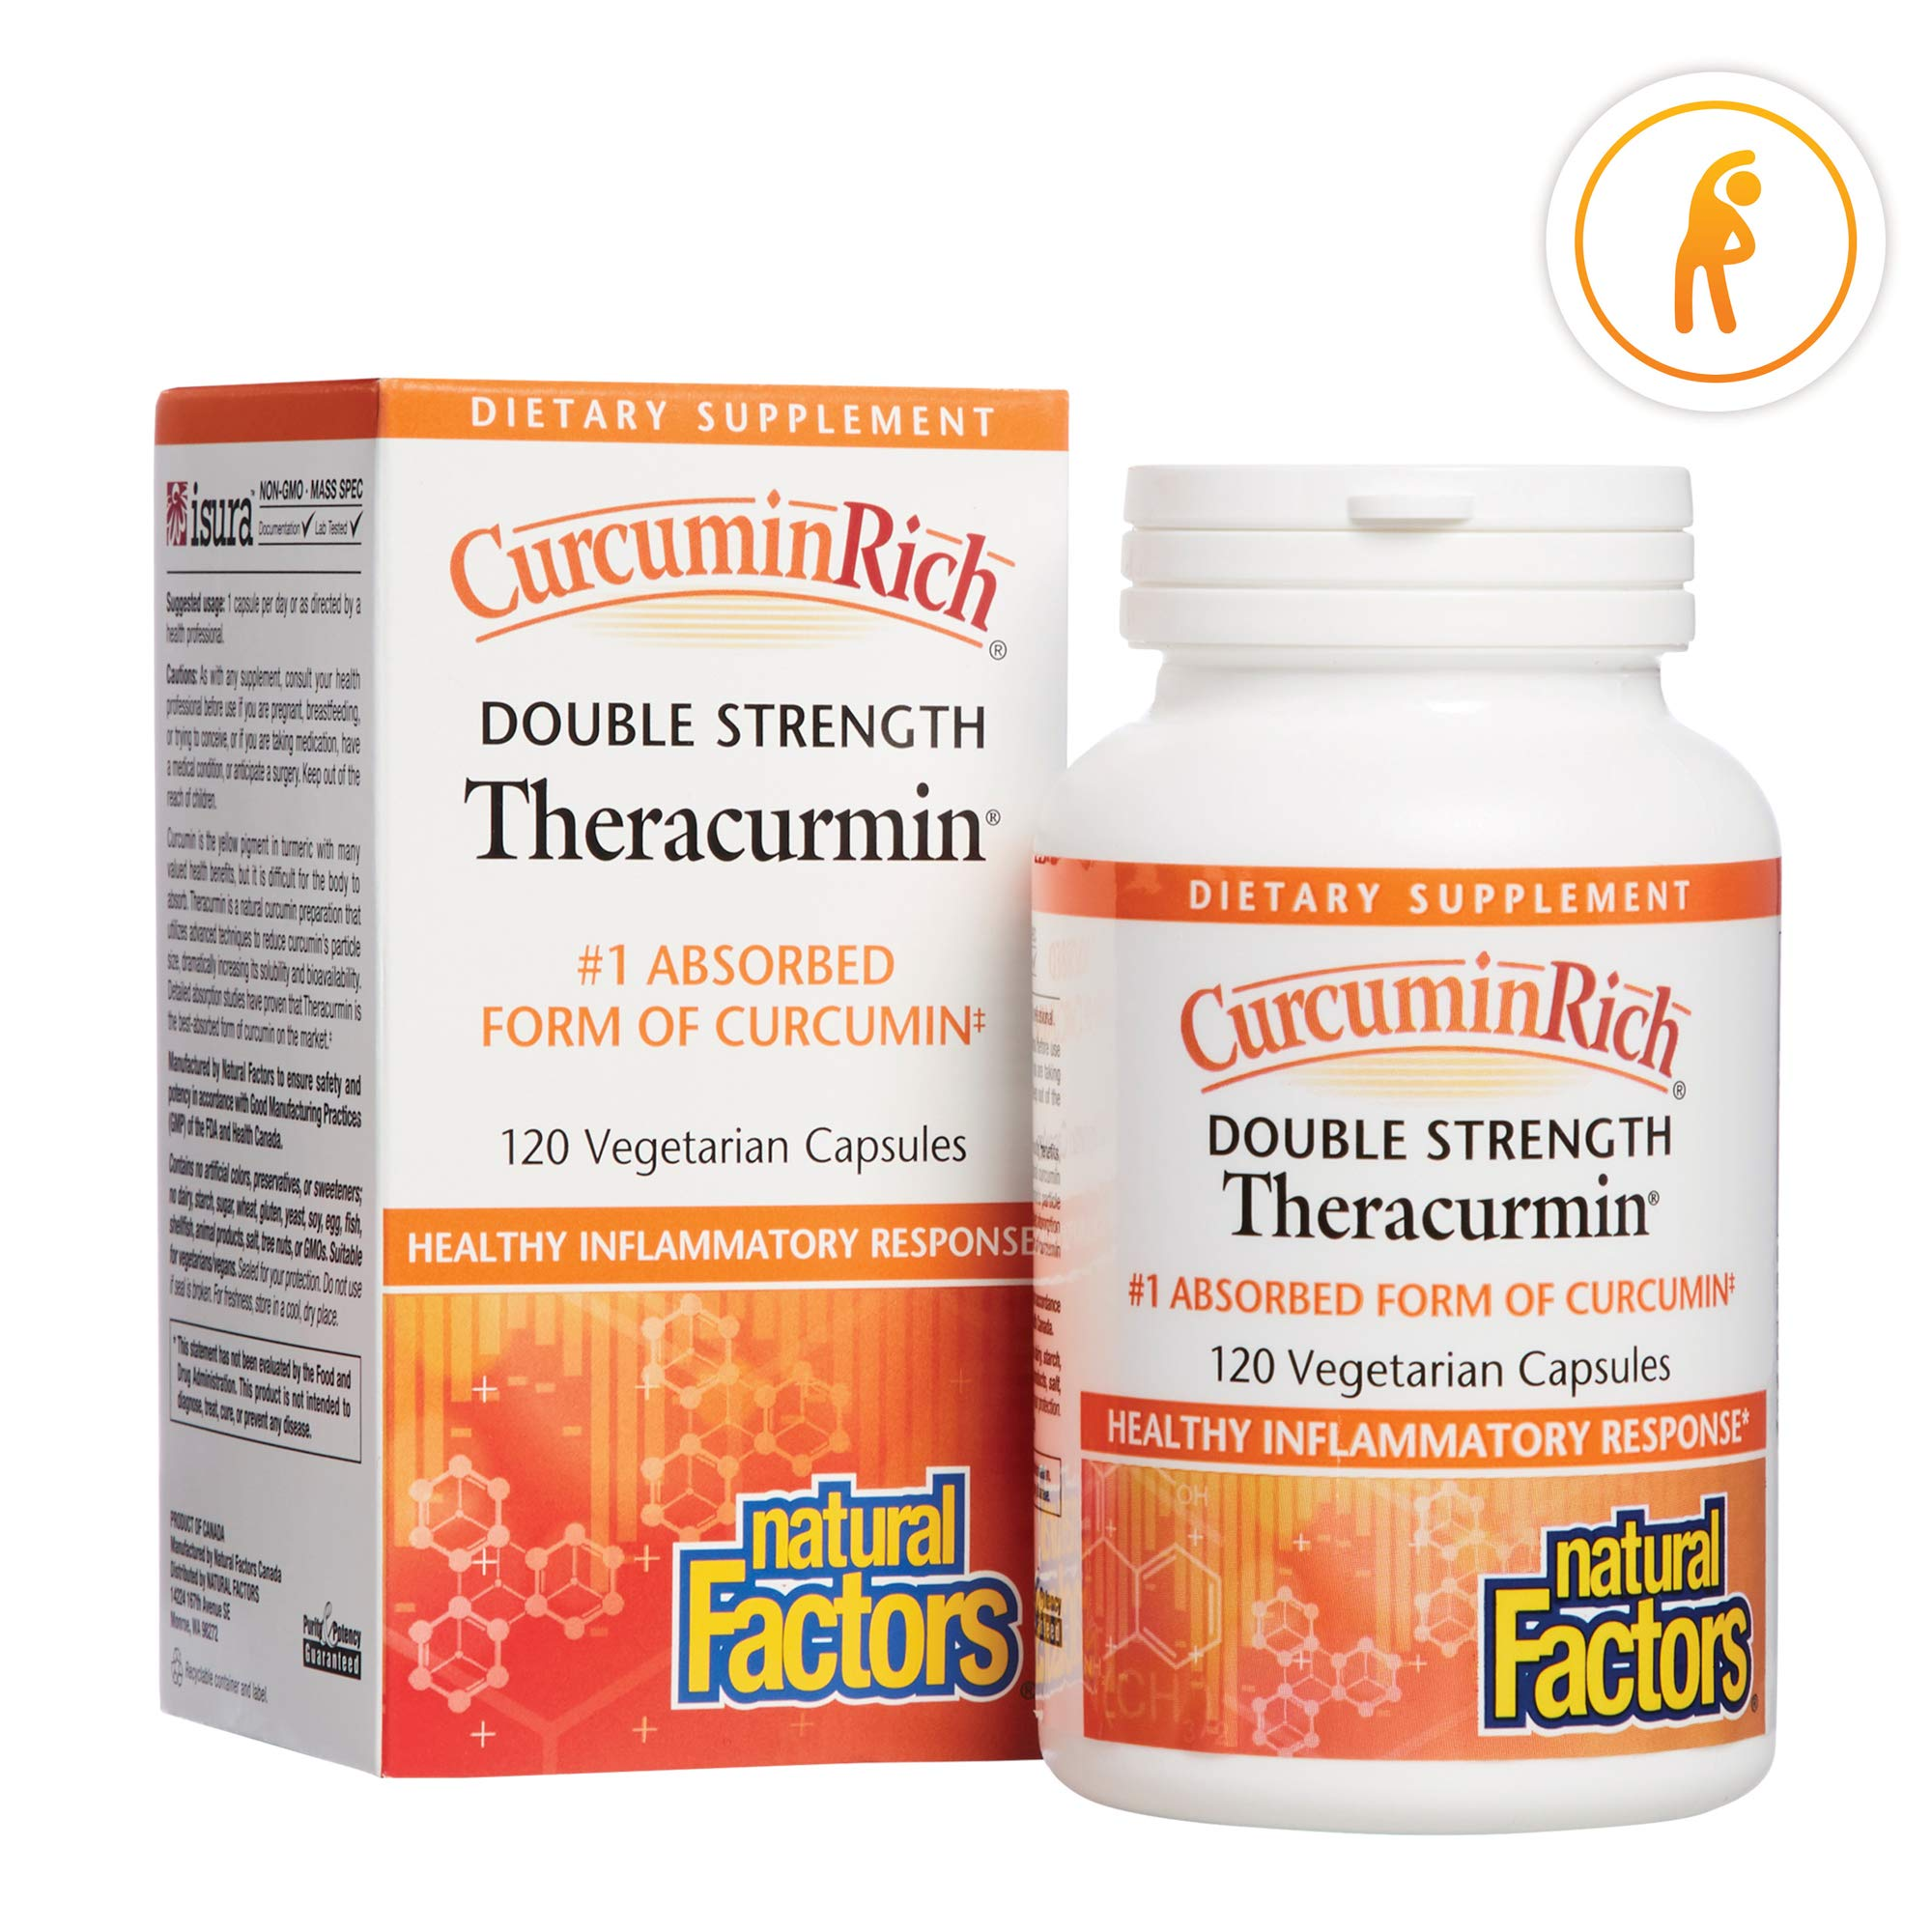 CurcuminRich Double Strength Theracurmin by Natural Factors, Supports Natural Inflammatory Response, Joint and Heart Function, 120 Capsules (120 Servings) by Natural Factors